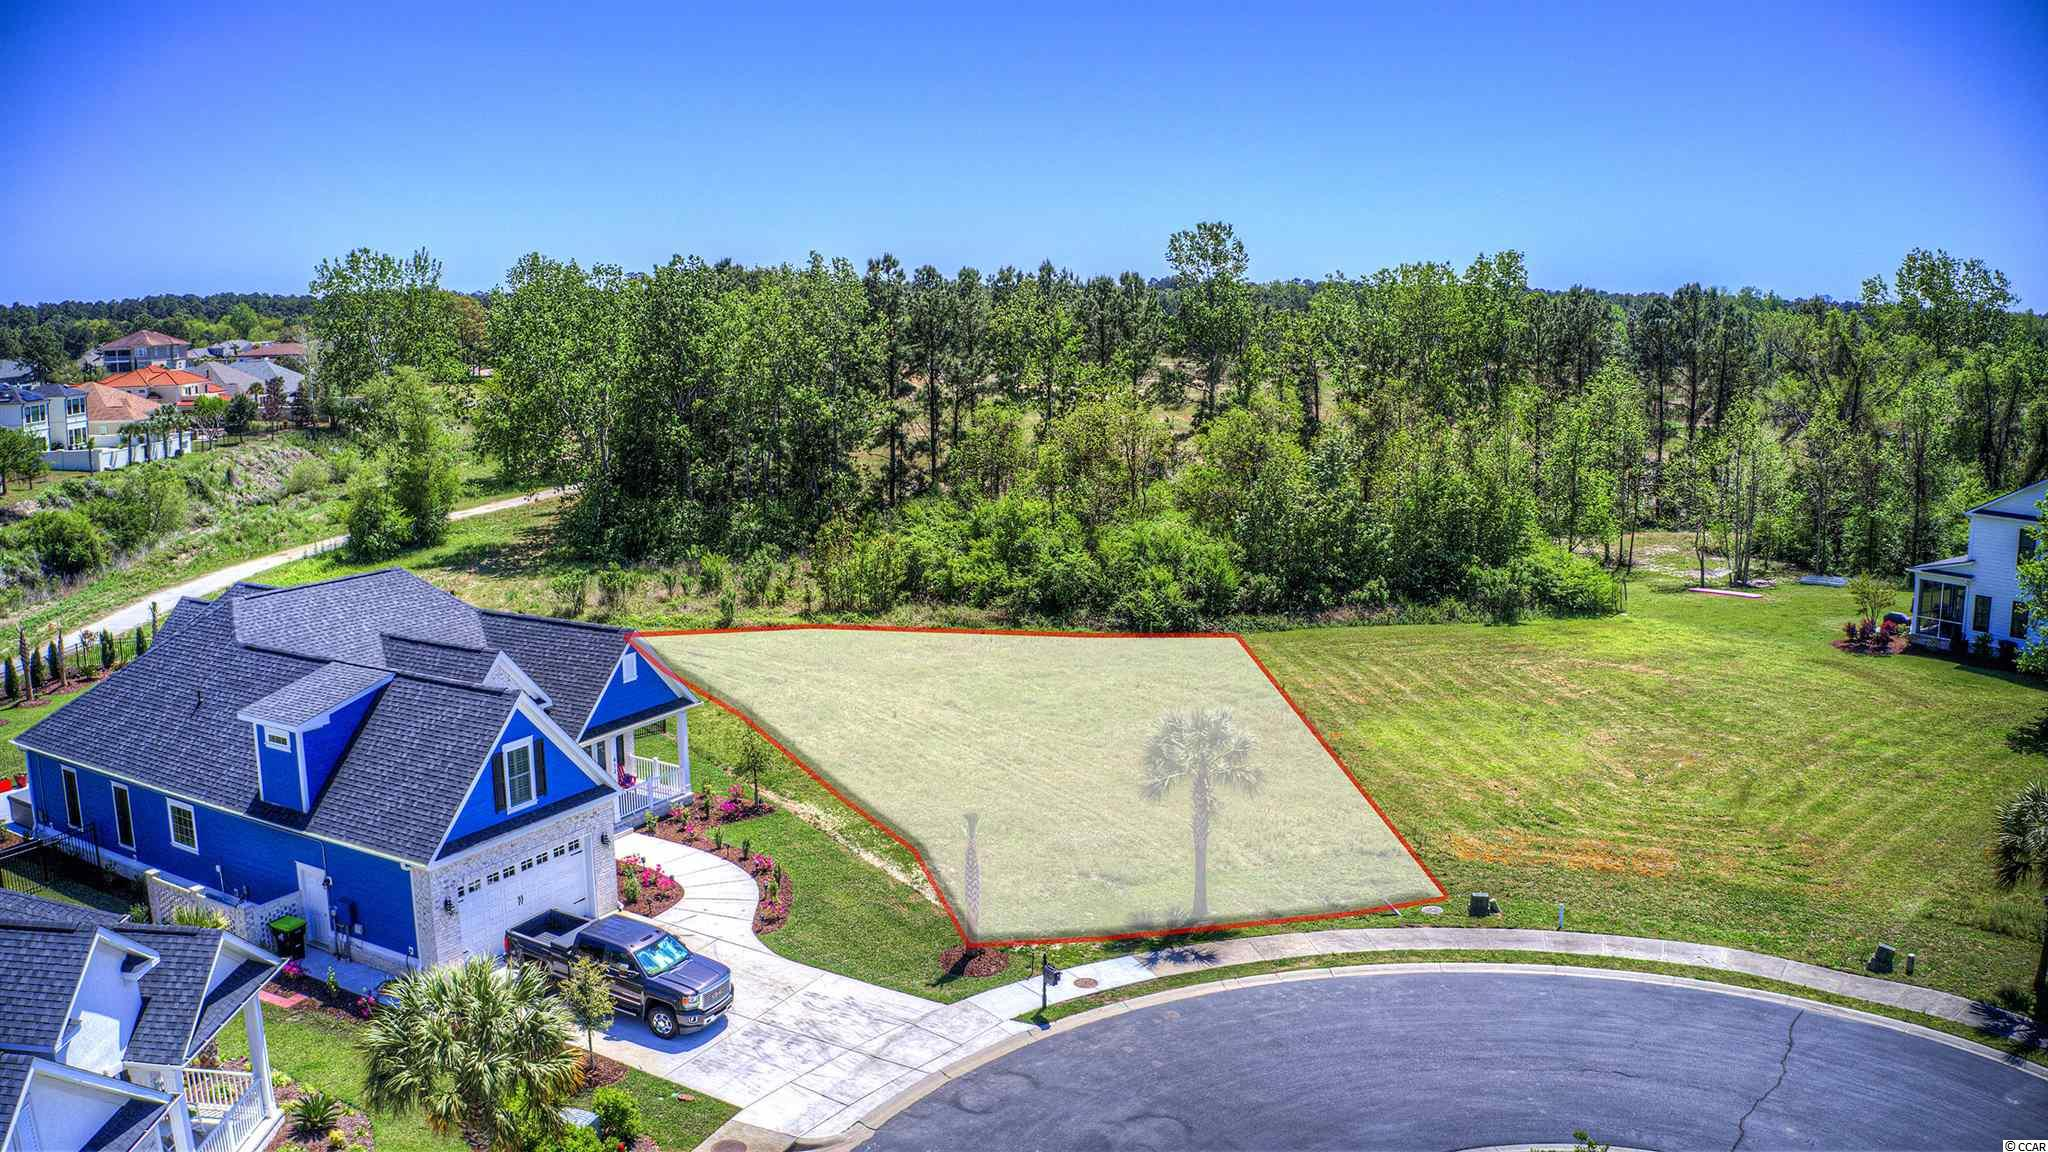 Phenomenal Lot Opportunity in this Gated Intracoastal Waterway Community! This home site is cleared and ready for your future dream home! Choose Your Own Builder - No Time Frame to Build. In addition to having their own community Boat Storage and Launch, residents can enjoy the Resort Style Pool, Two Story Clubhouse, Tennis Courts, and Playground situated on the communities Own Little Island conveniently located in the center of the community! Lining the streets are a variety of size and style homes. This lot is situated on a relaxed cul-de-sac and backs to the communities Tree Lined Sand Reserve. Just minutes to health care, restaurants, shopping, entertainment and only 5 miles to the BEACH! River Oaks Dr. is just around the corner from International Dr. and Hwy 31 which gives you amazingly quick access to Conway and surrounding areas of the Grand Strand! Come check it out today before its too late!